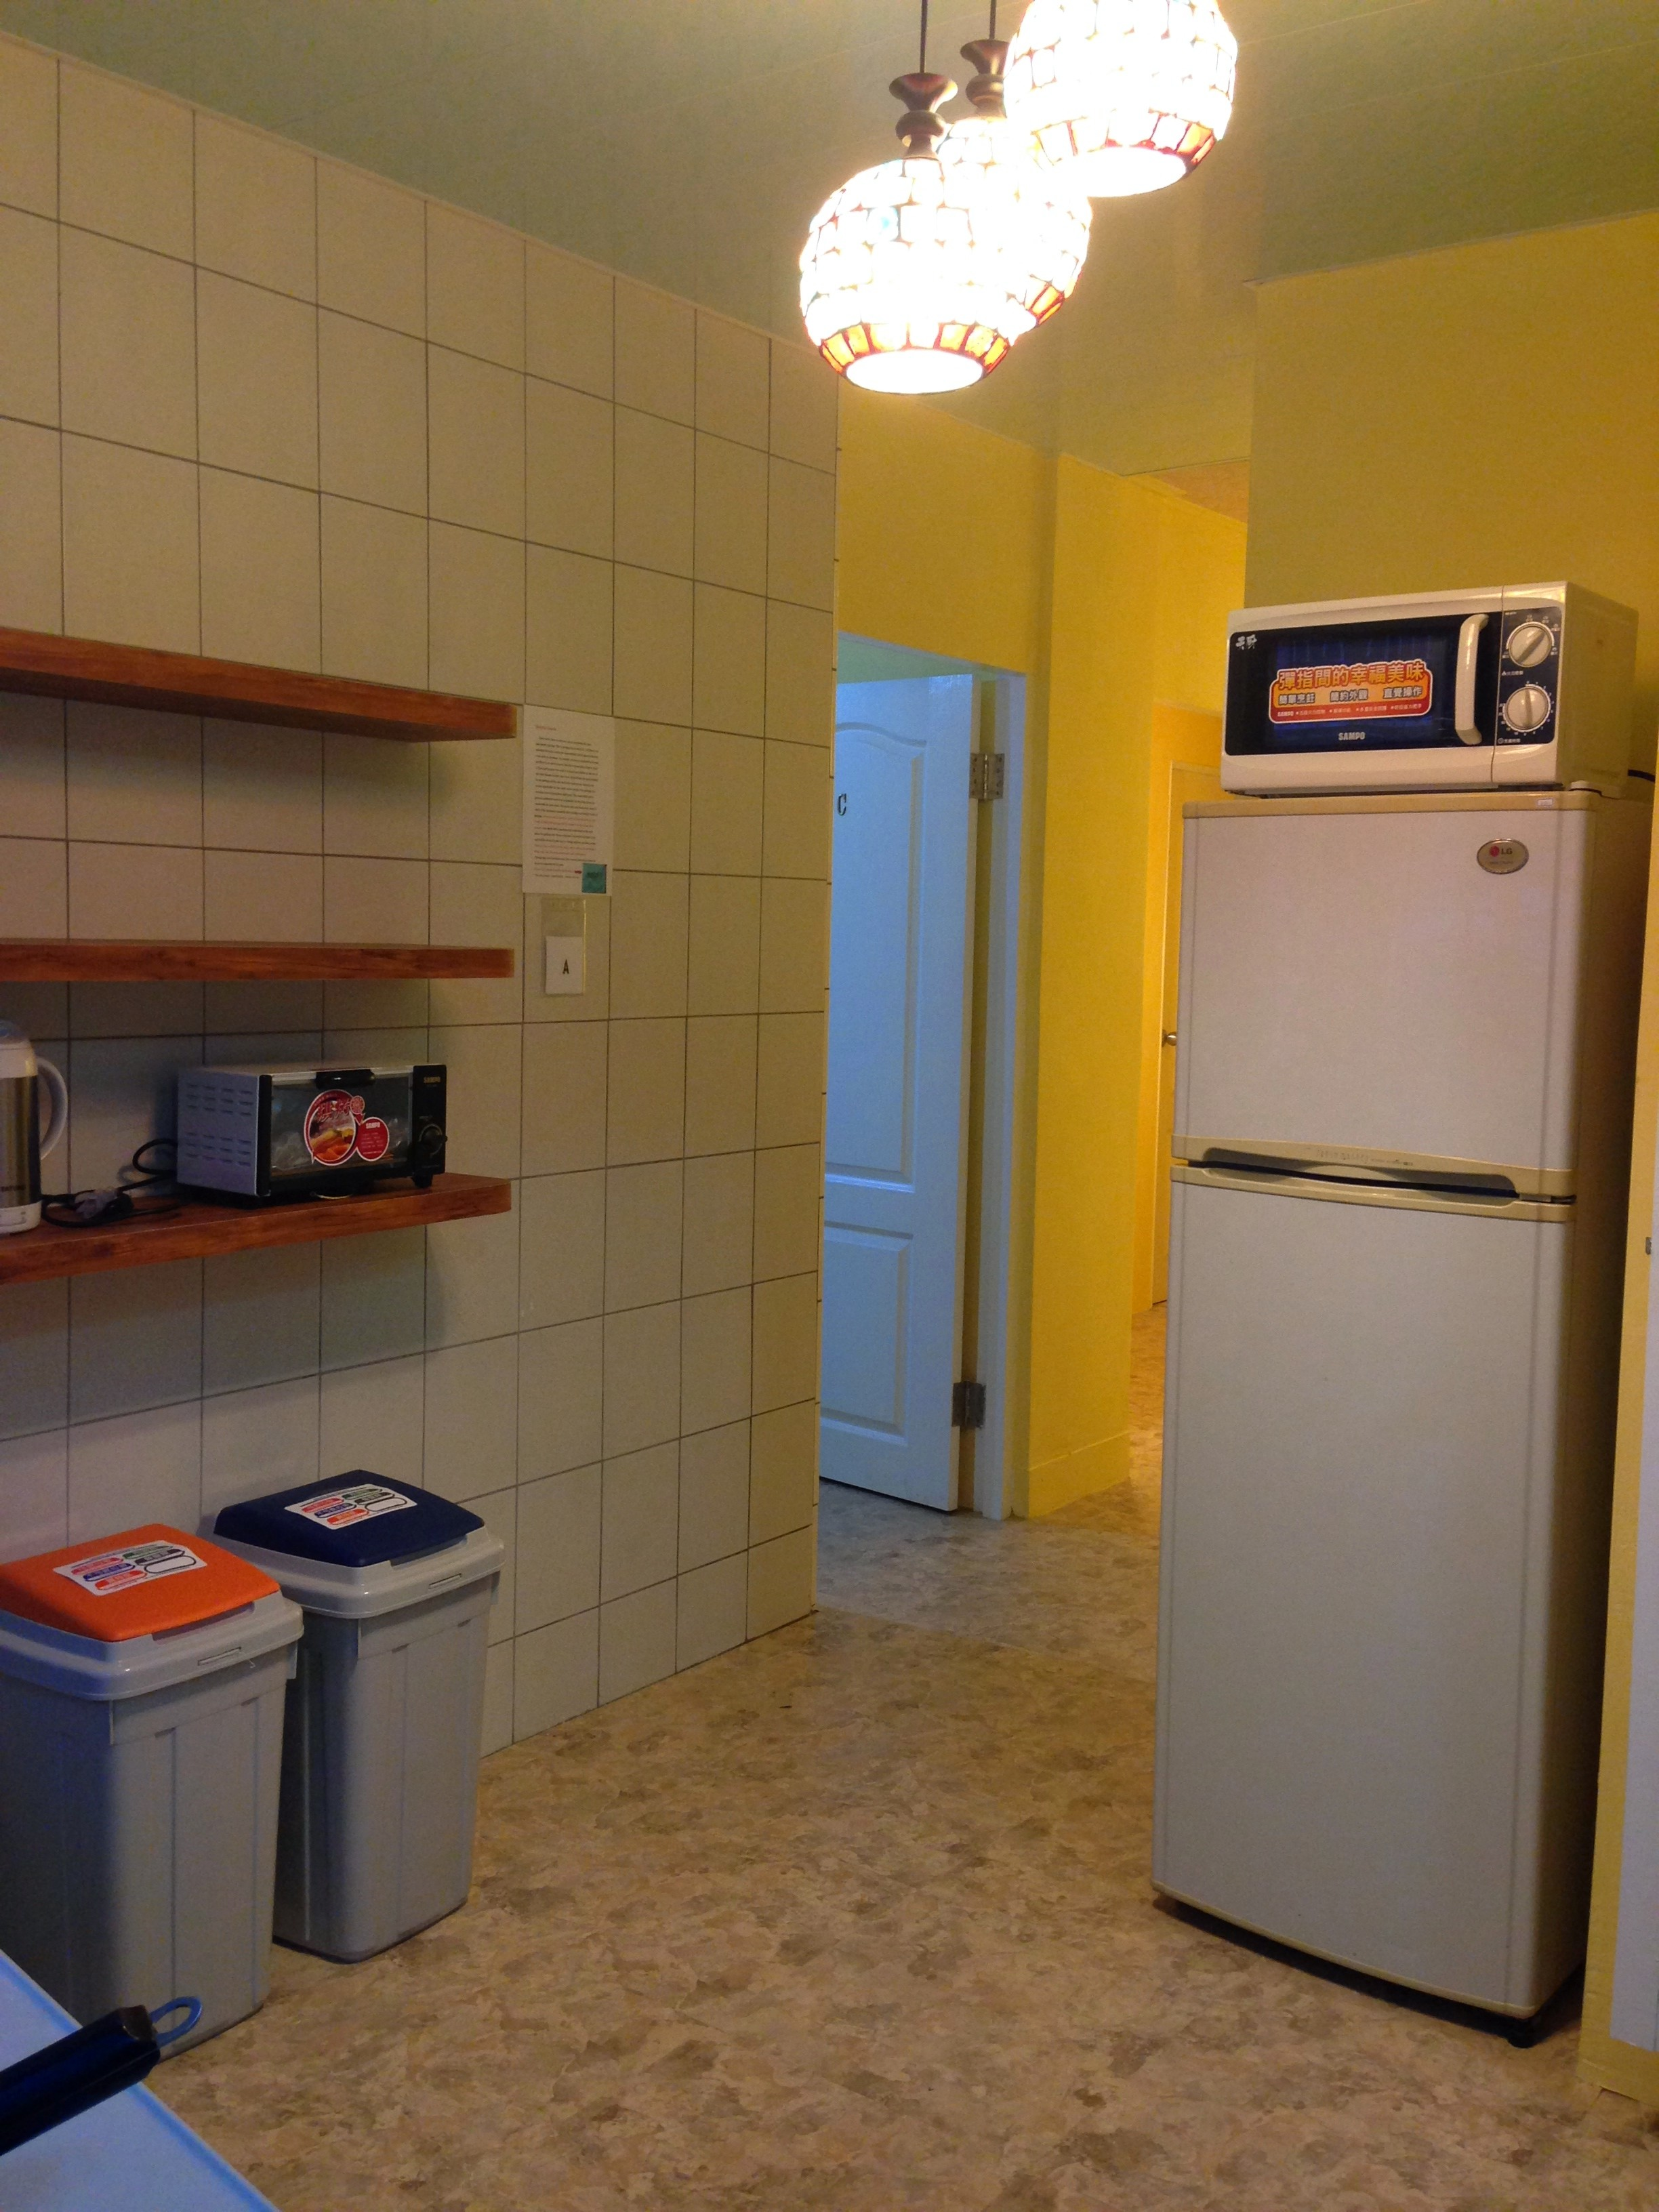 Teaching English and Living in Taiwan Apartments to Share, Double bed room 3 minute away from Gongguan station from Sep 1st (all inclusive) image